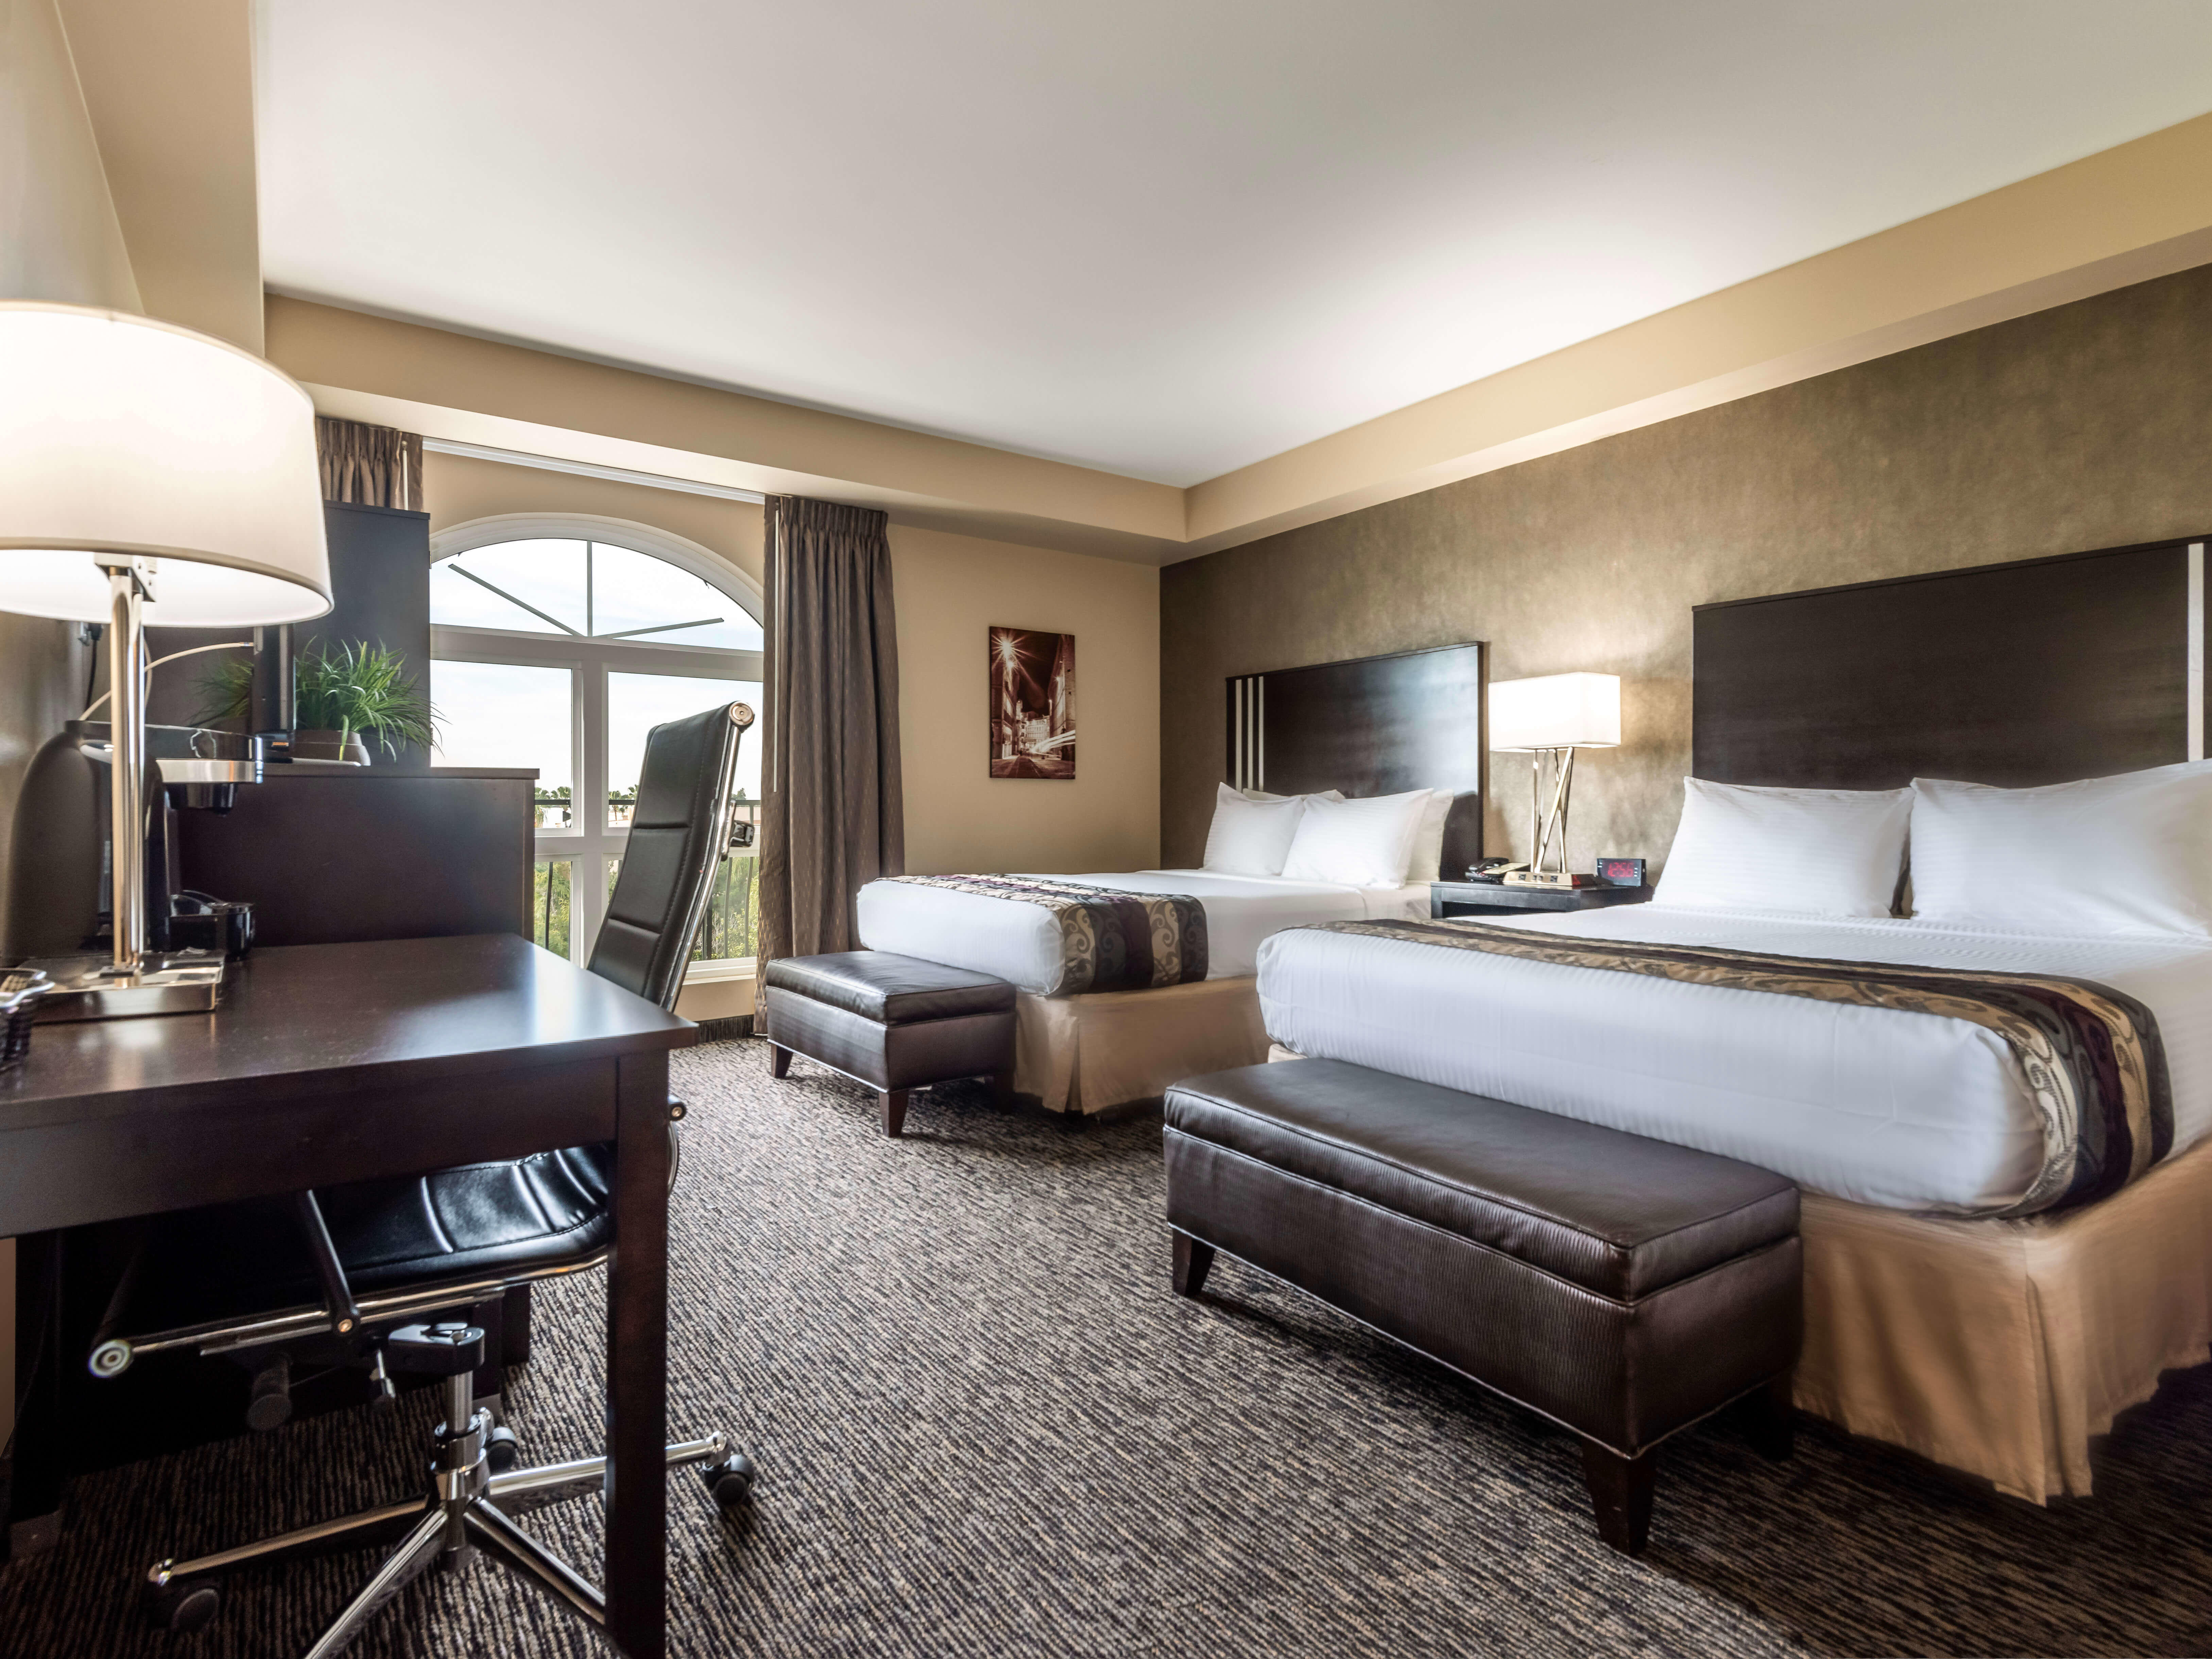 Legacy suite bedroom at Grand Legacy at The Park Anaheim.